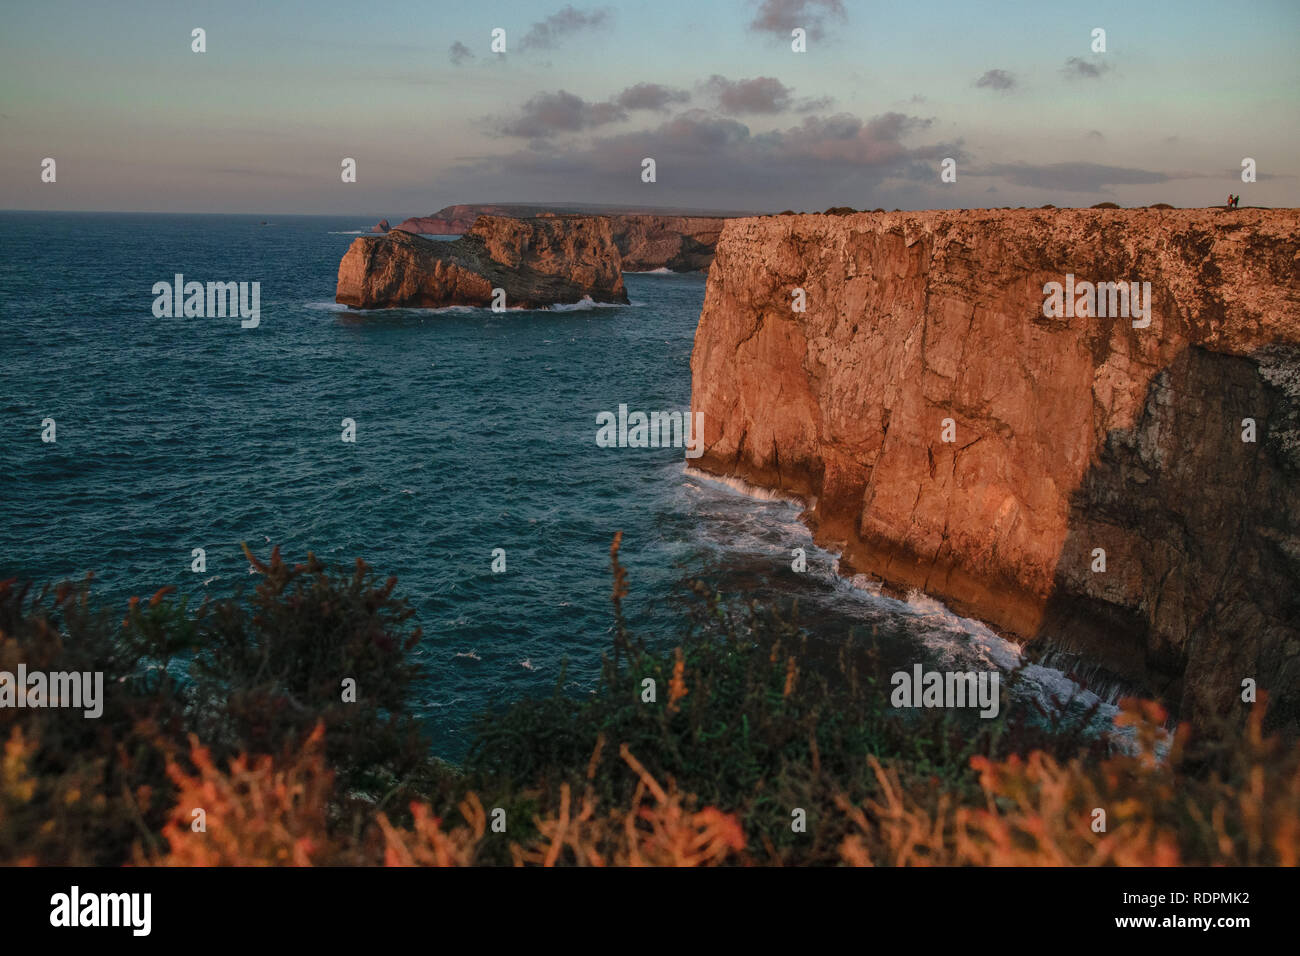 Cliffs of Portugal - Stock Image